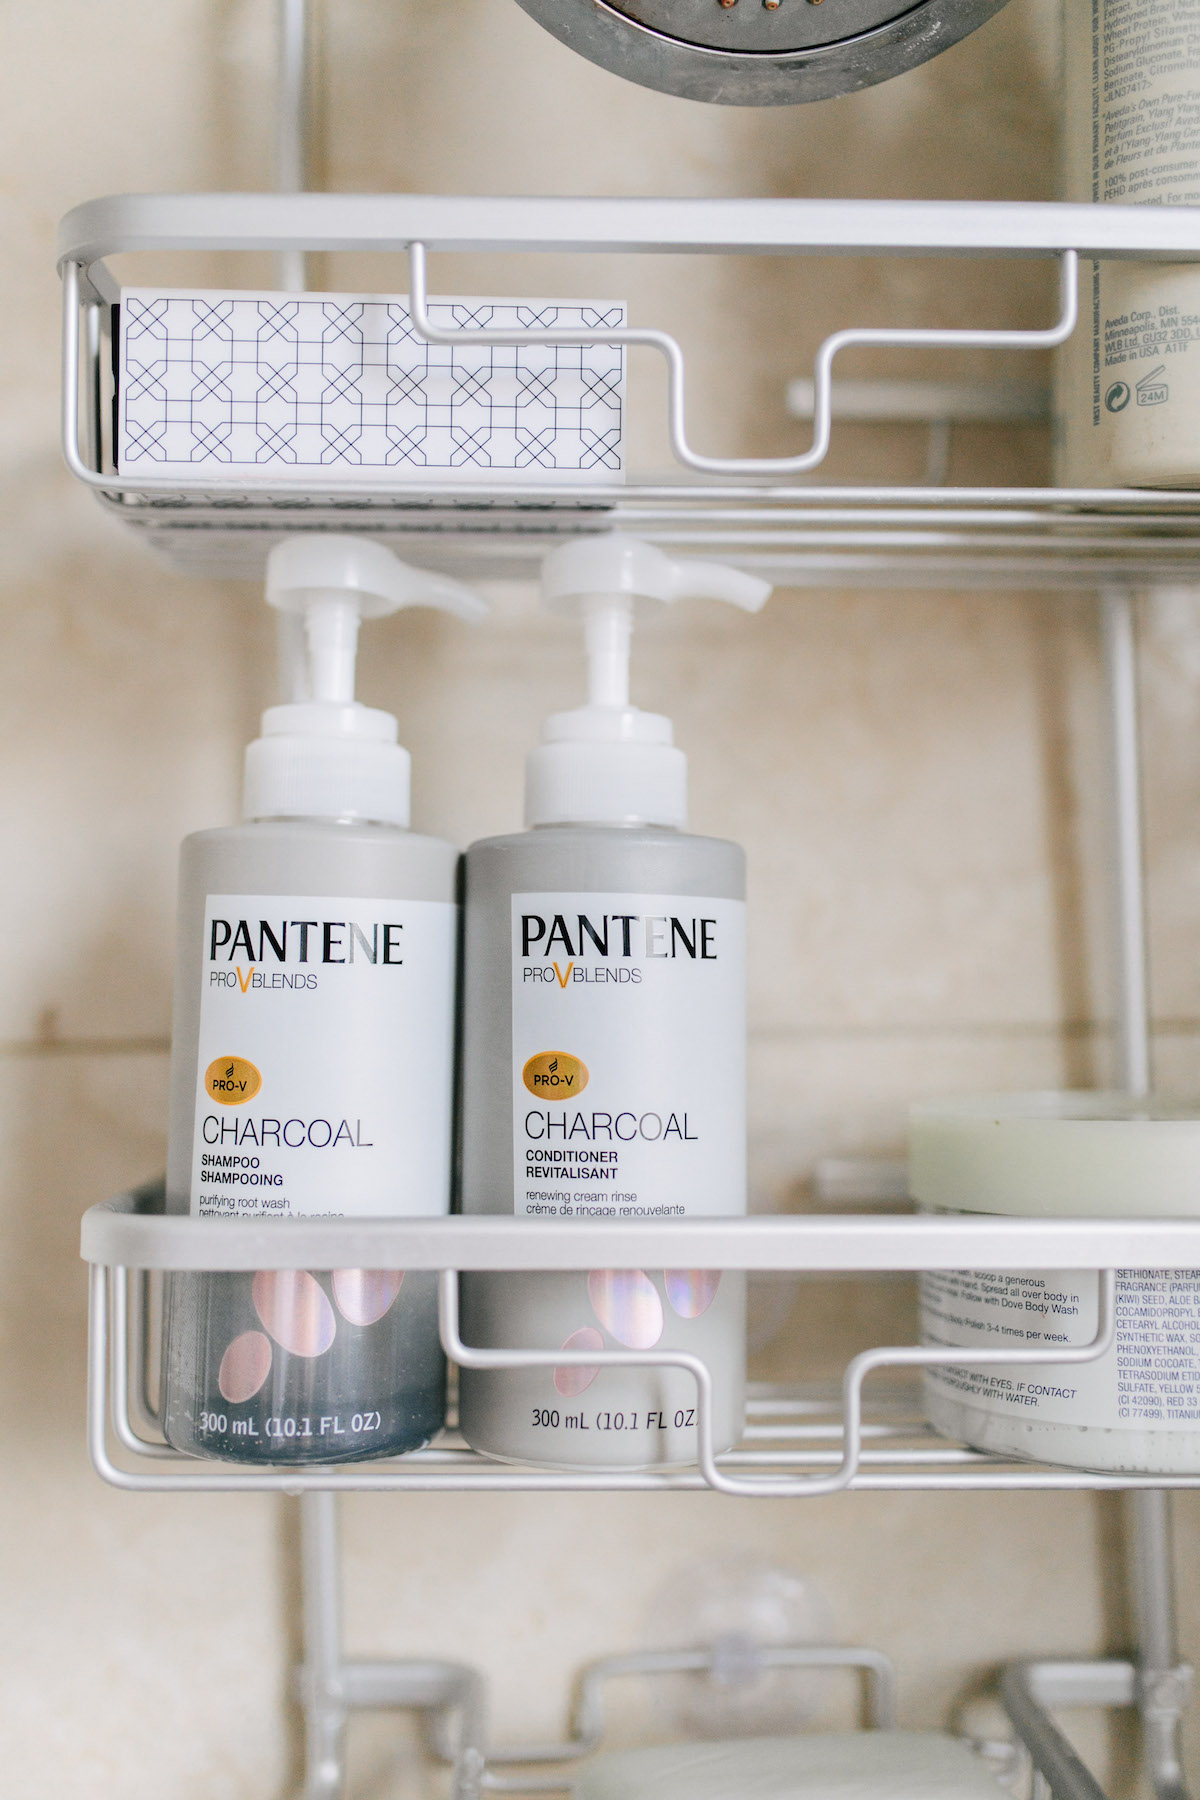 Pantene Charcoal Collection Shampoo and Conditioner